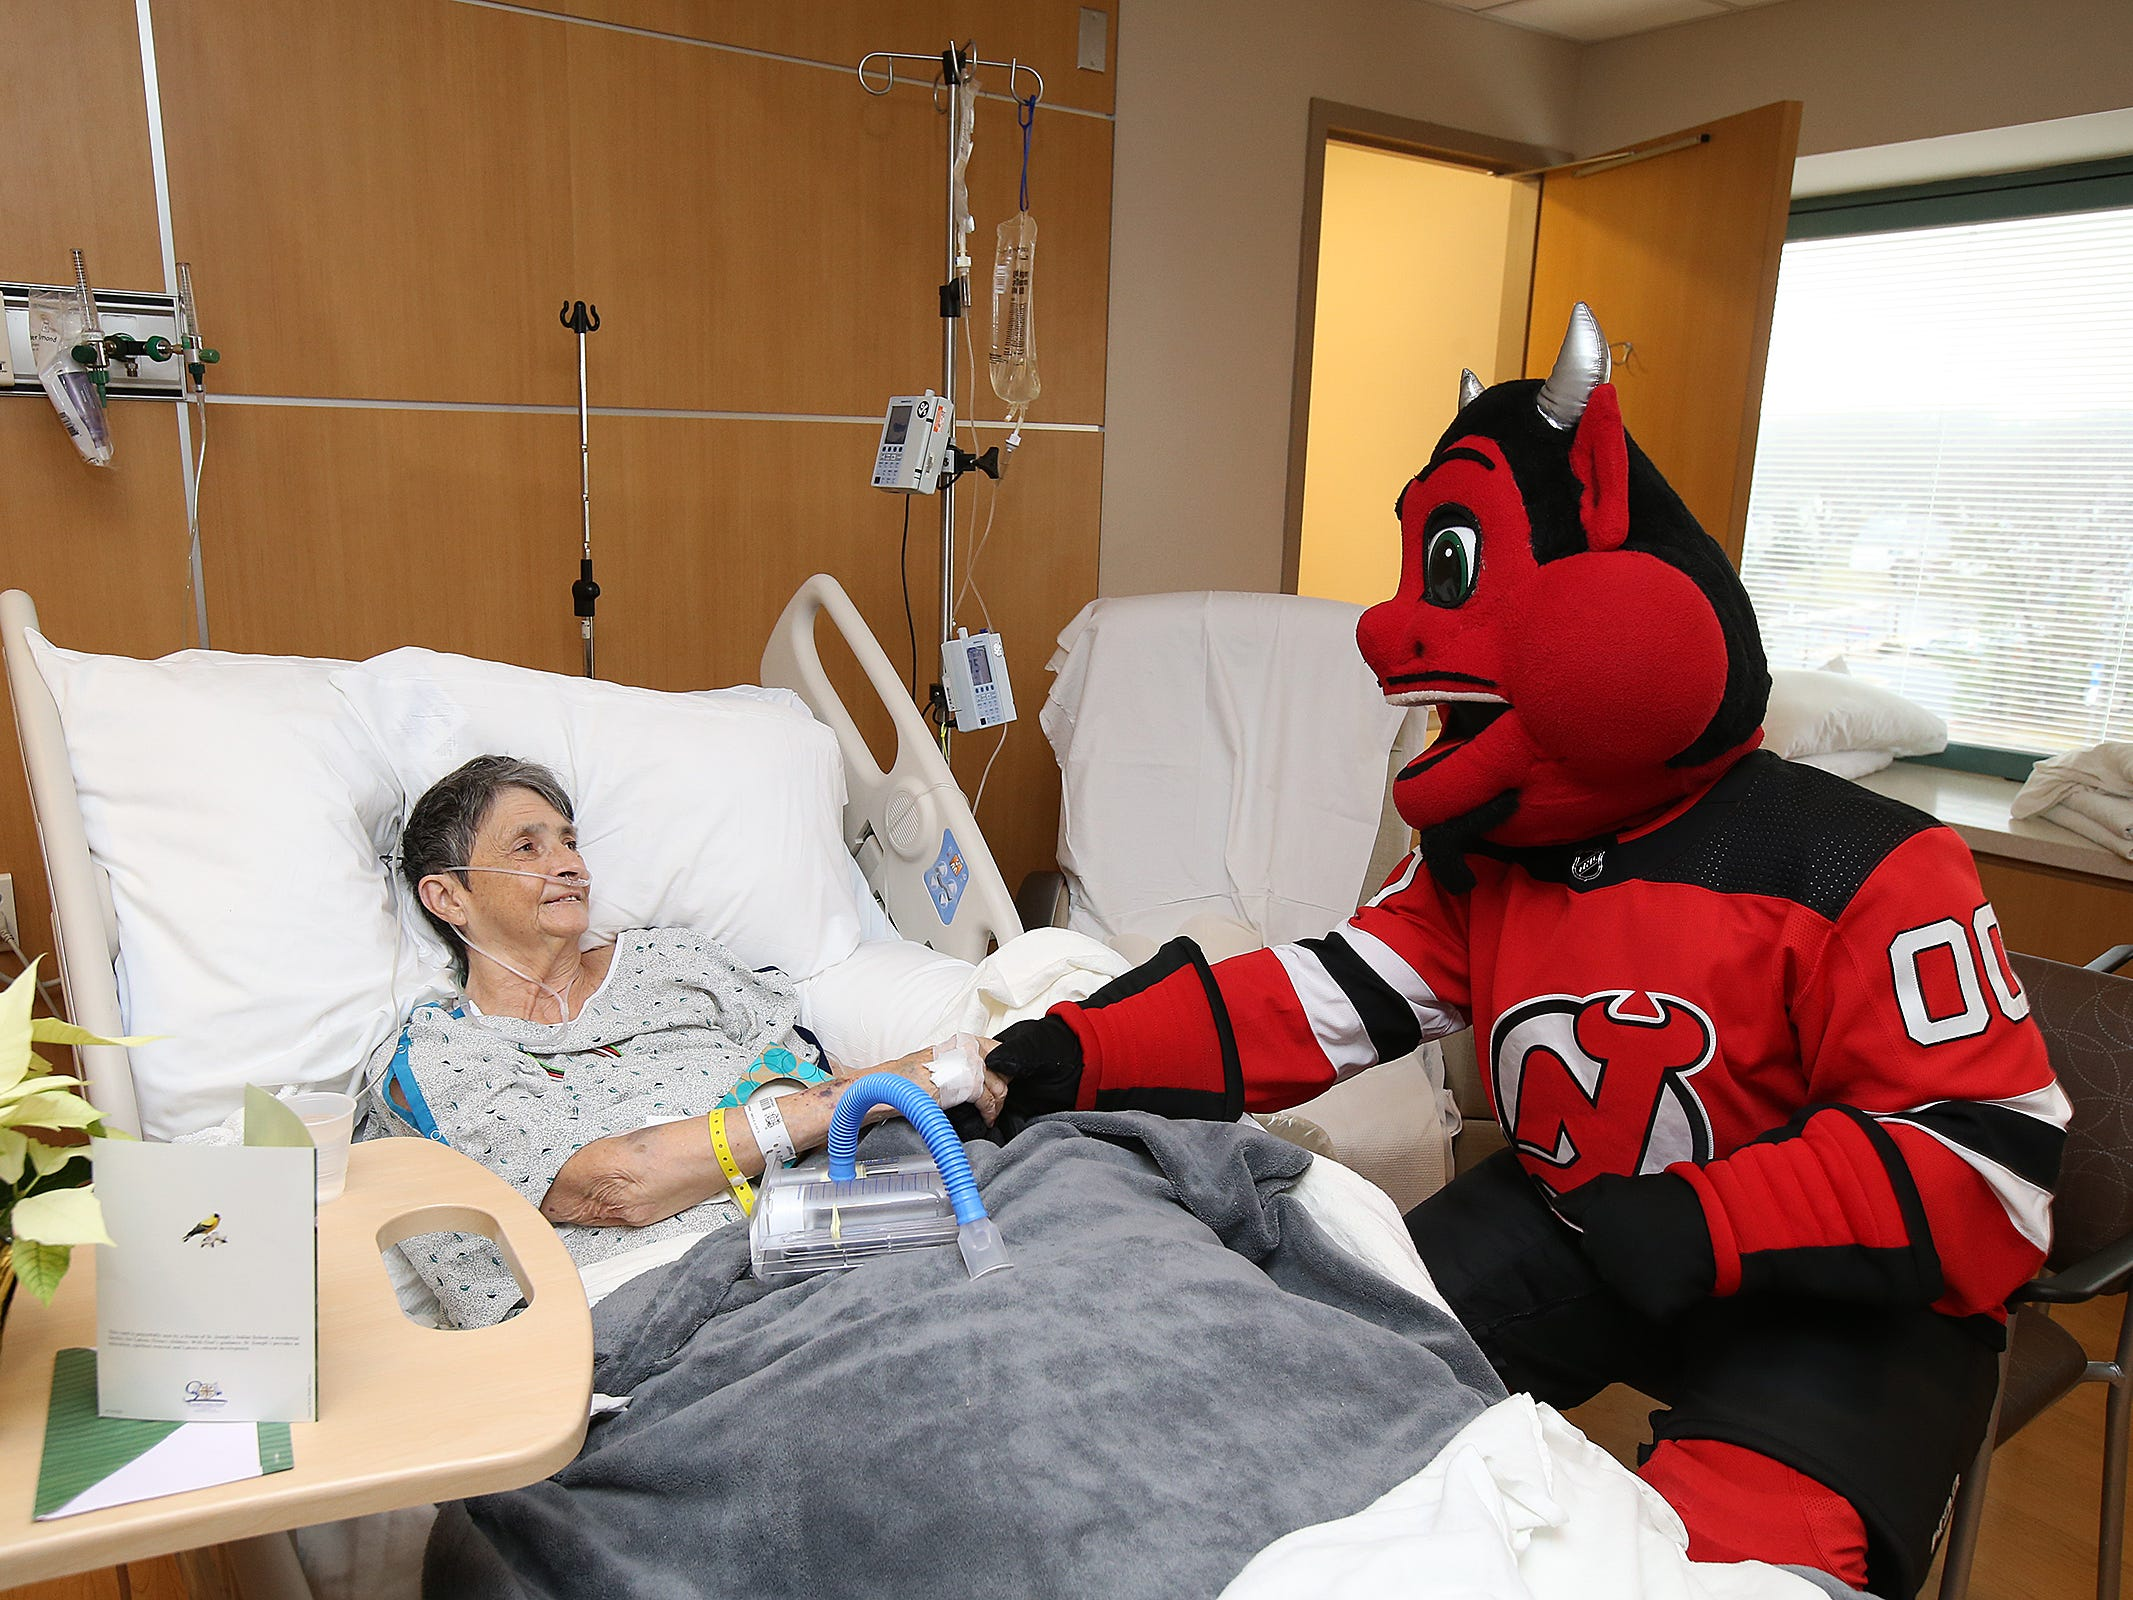 The New Jersey Devils' mascot visits Mary Layton of Lakewood in her hospital room during a visit to the Monmouth Medical Center Southern Campus in Lakewood, NJ Monday, December 17, 2018. During his visit, he also loaded donated toys into a police car with members of the Lakewood PBA and Lakewood Police Department.